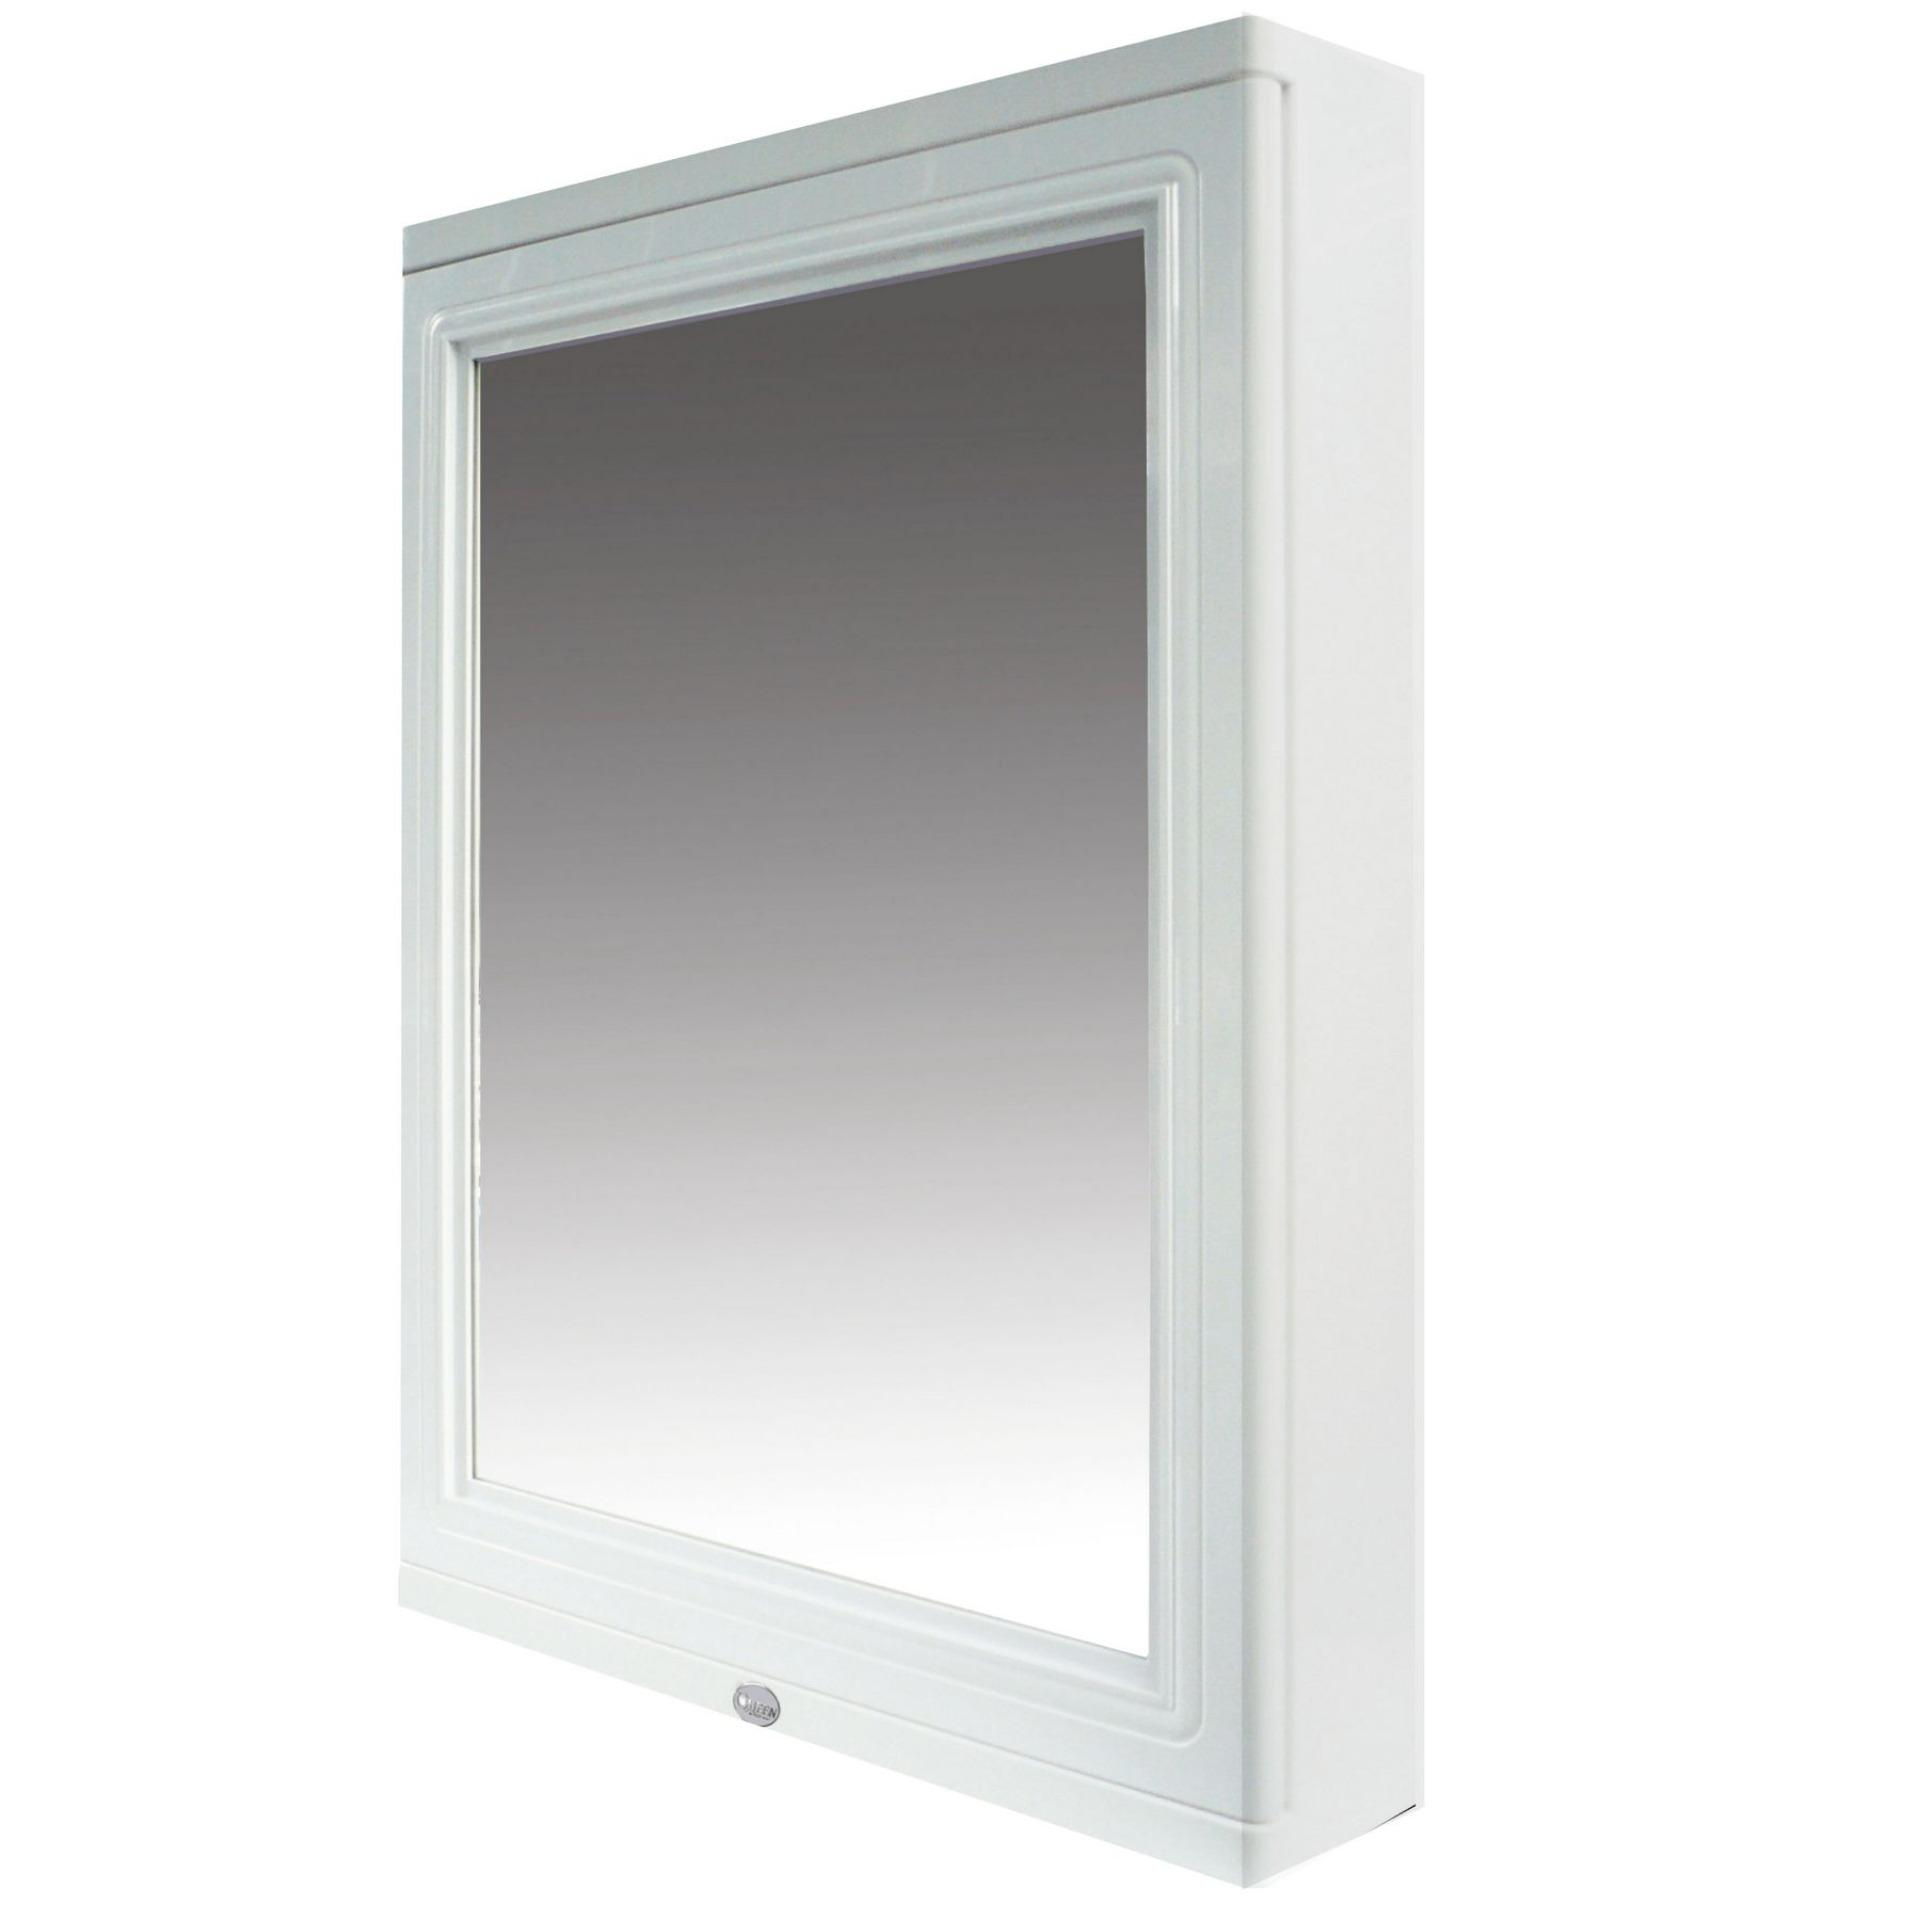 Queen Space Waterproof Bathroom Mirror Cabinet With Nano Coating - (white) By Legato Resources Pte Ltd